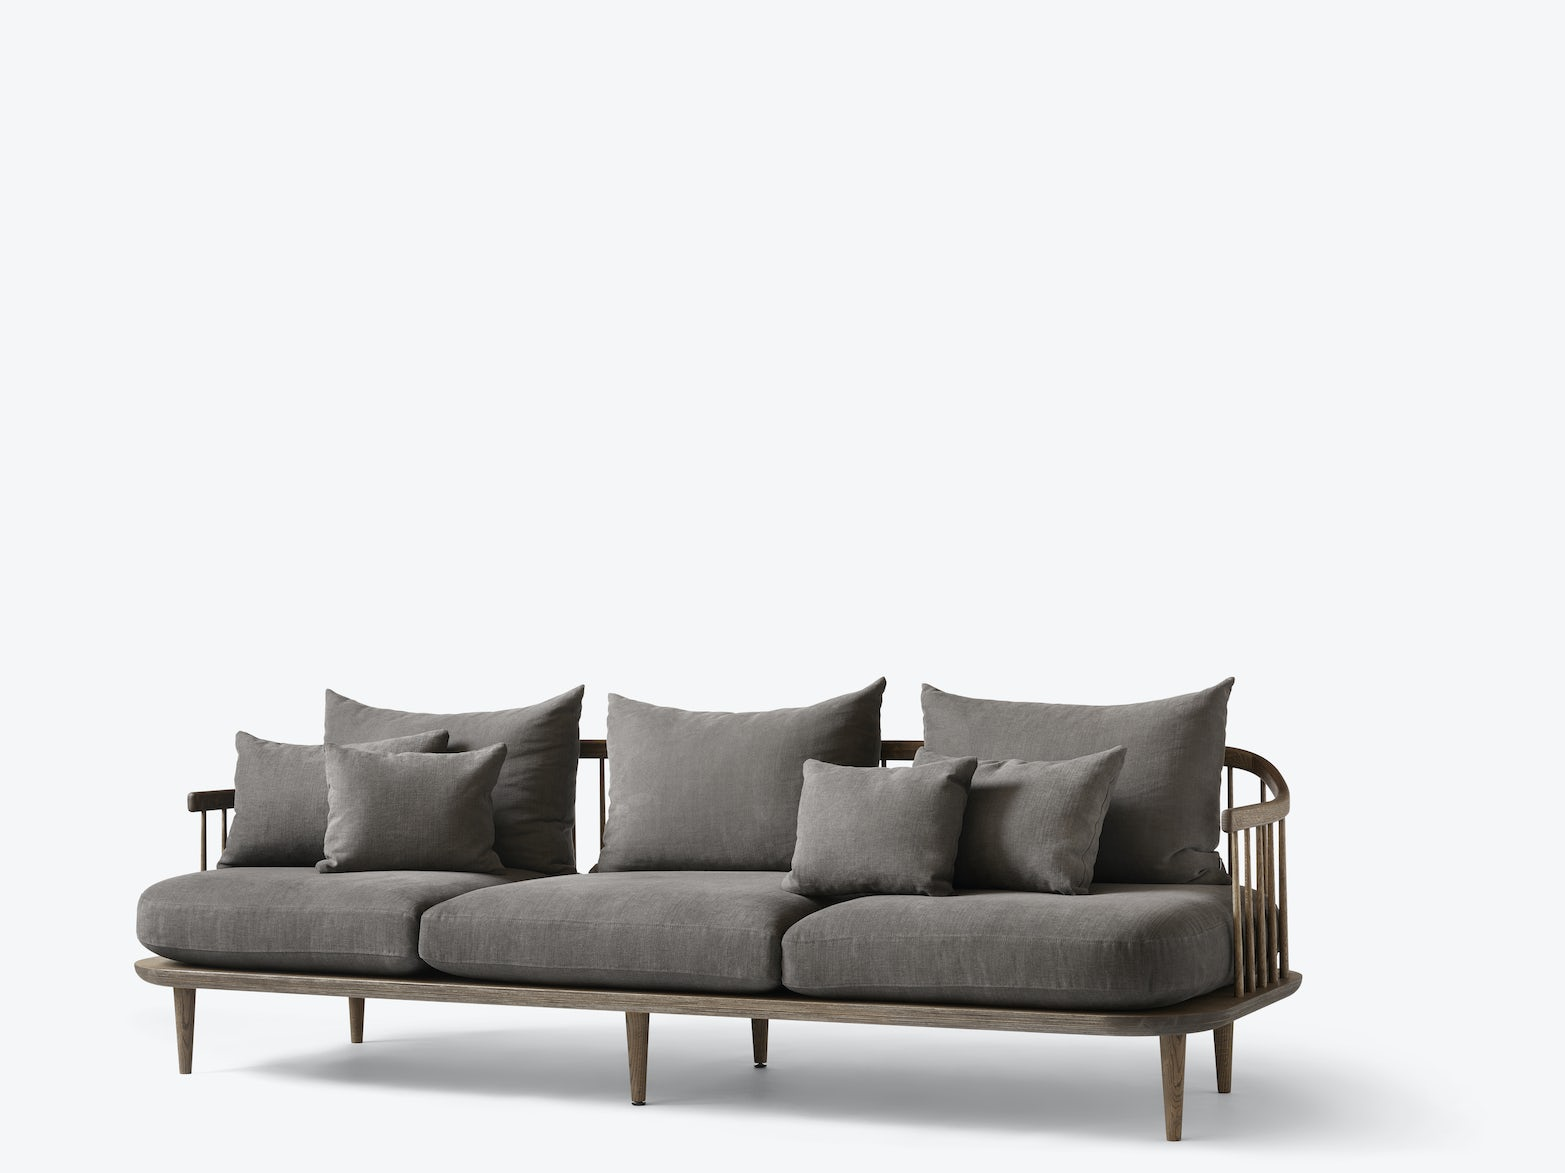 Fly sofa SC12 space copenhagen and tradition 2